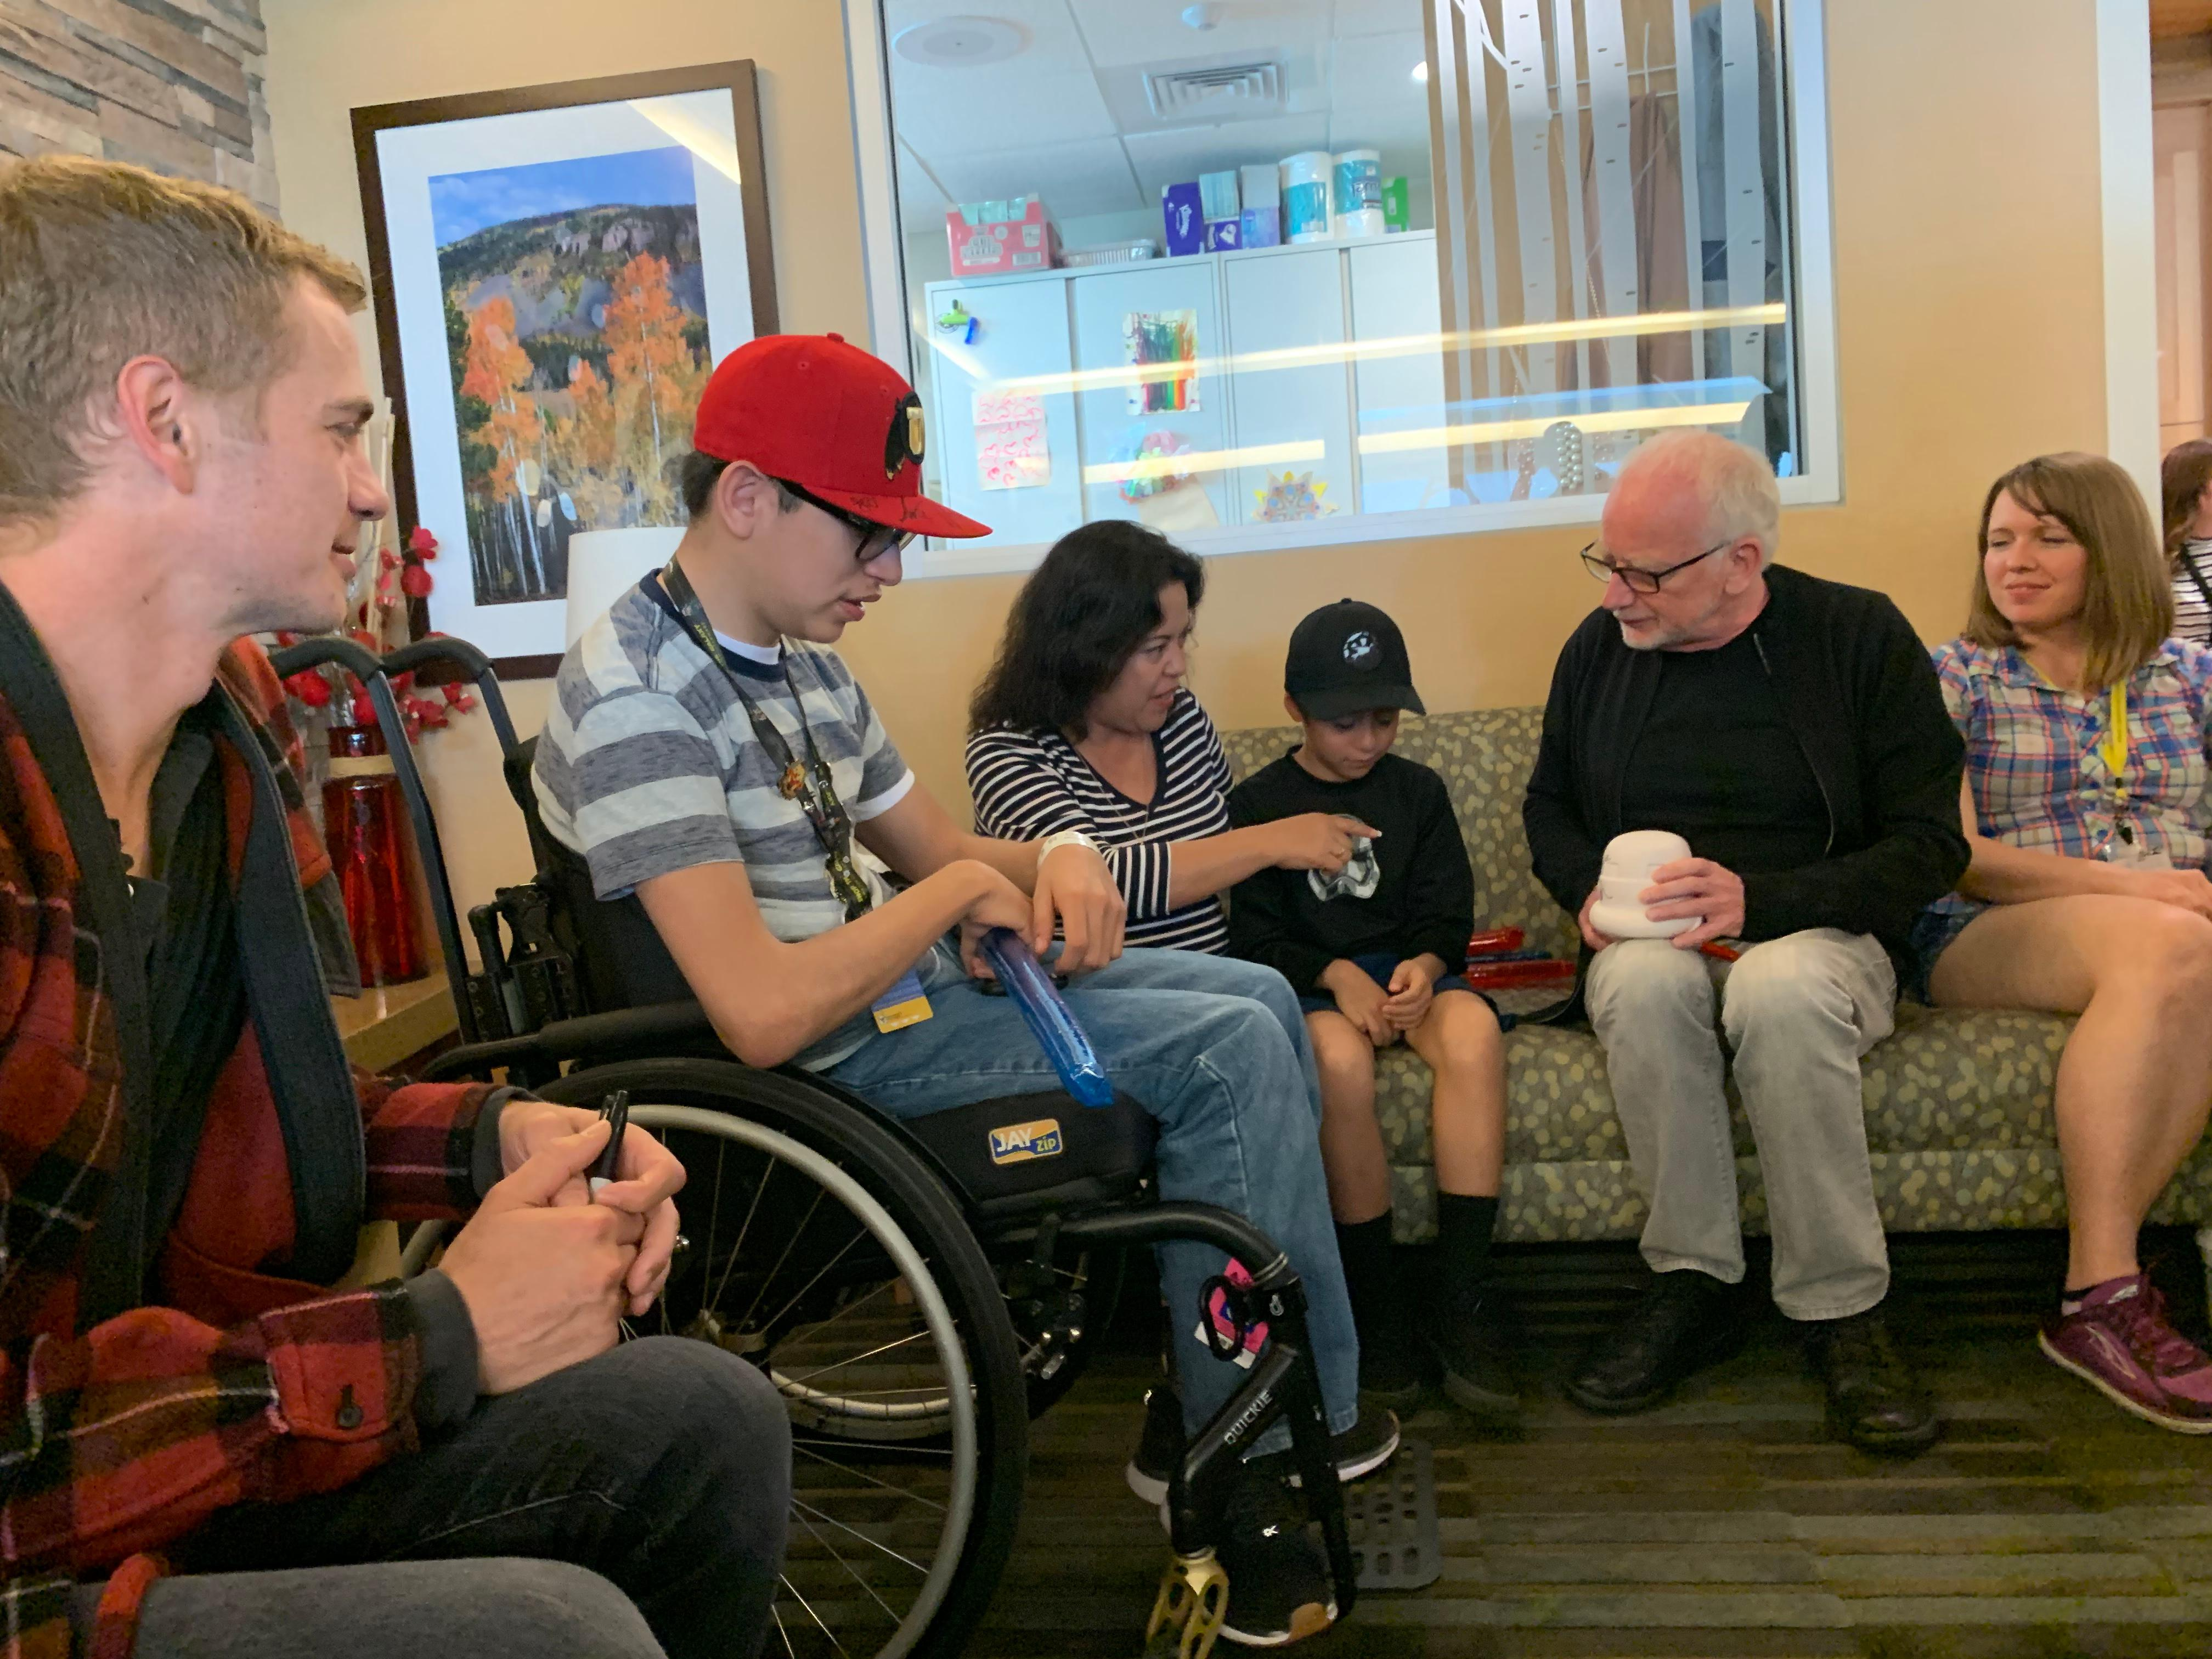 Actors Ian McDiarmid (Emperor Palpatine) and Hayden Christensen (Anakin Skywalker/Darth Vader) of Star Wars fame visit with kids and their families at Primary Children's Hospital in Salt Lake City, Utah on September 5. 2019. (Photo: Adam Forgie, KUTV)